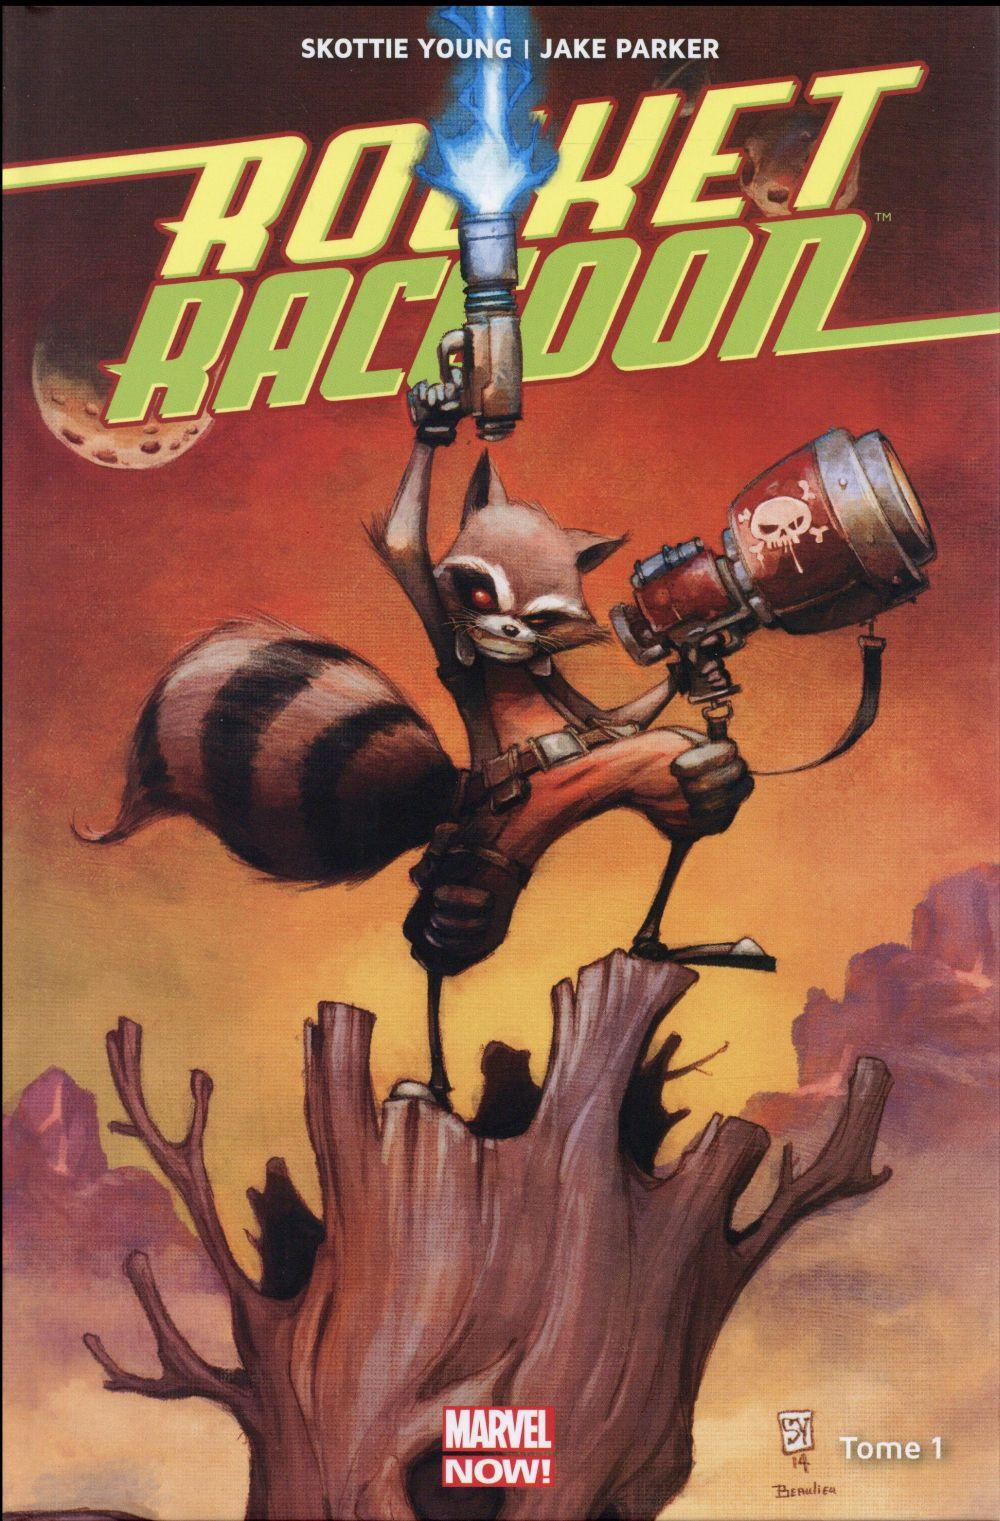 Vente Livre :                                    Rocket Raccoon t.1                                      - Jake Parker  - Scottie Young